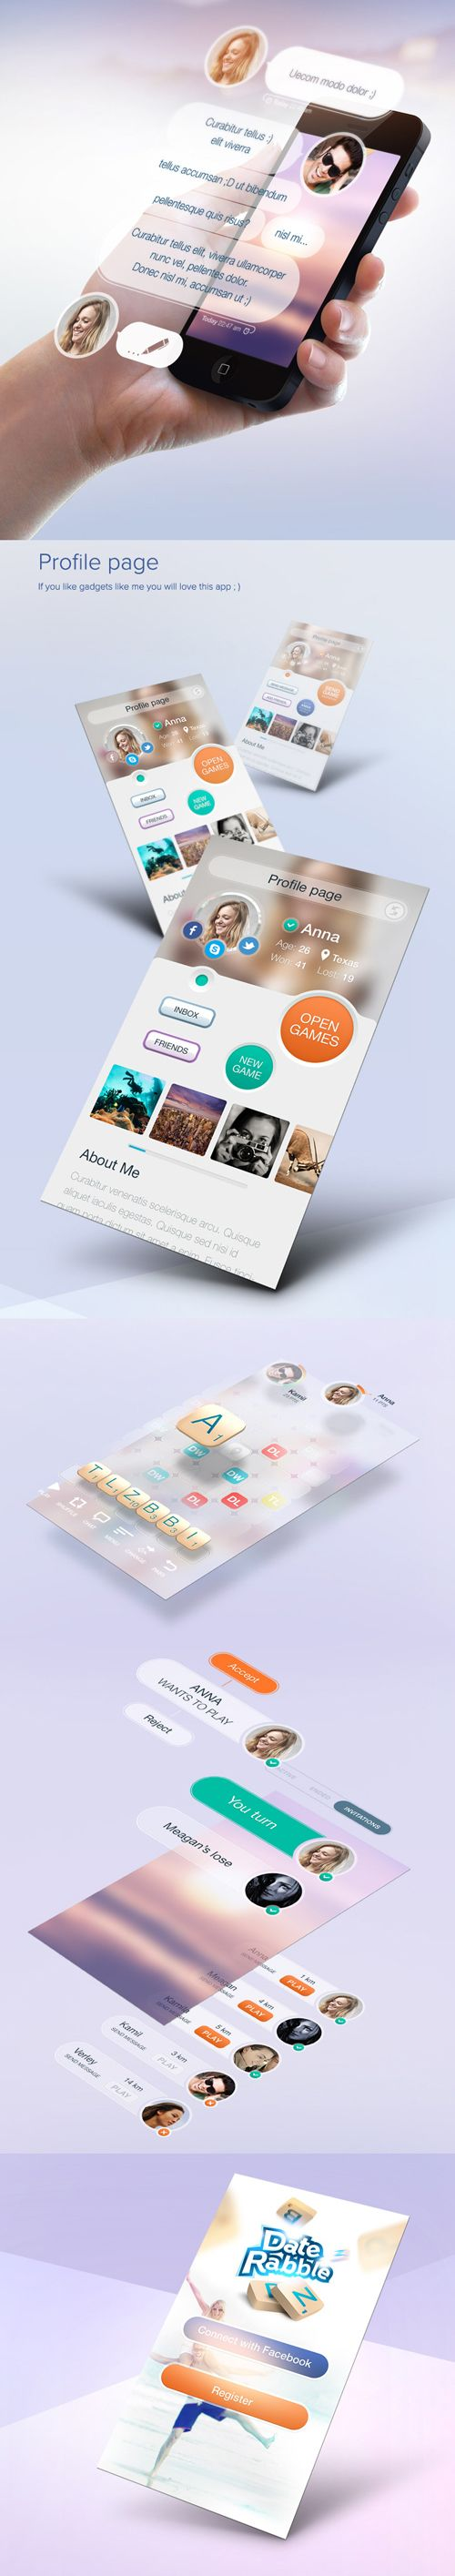 Game app UI Designs and Concepts for Inspiration